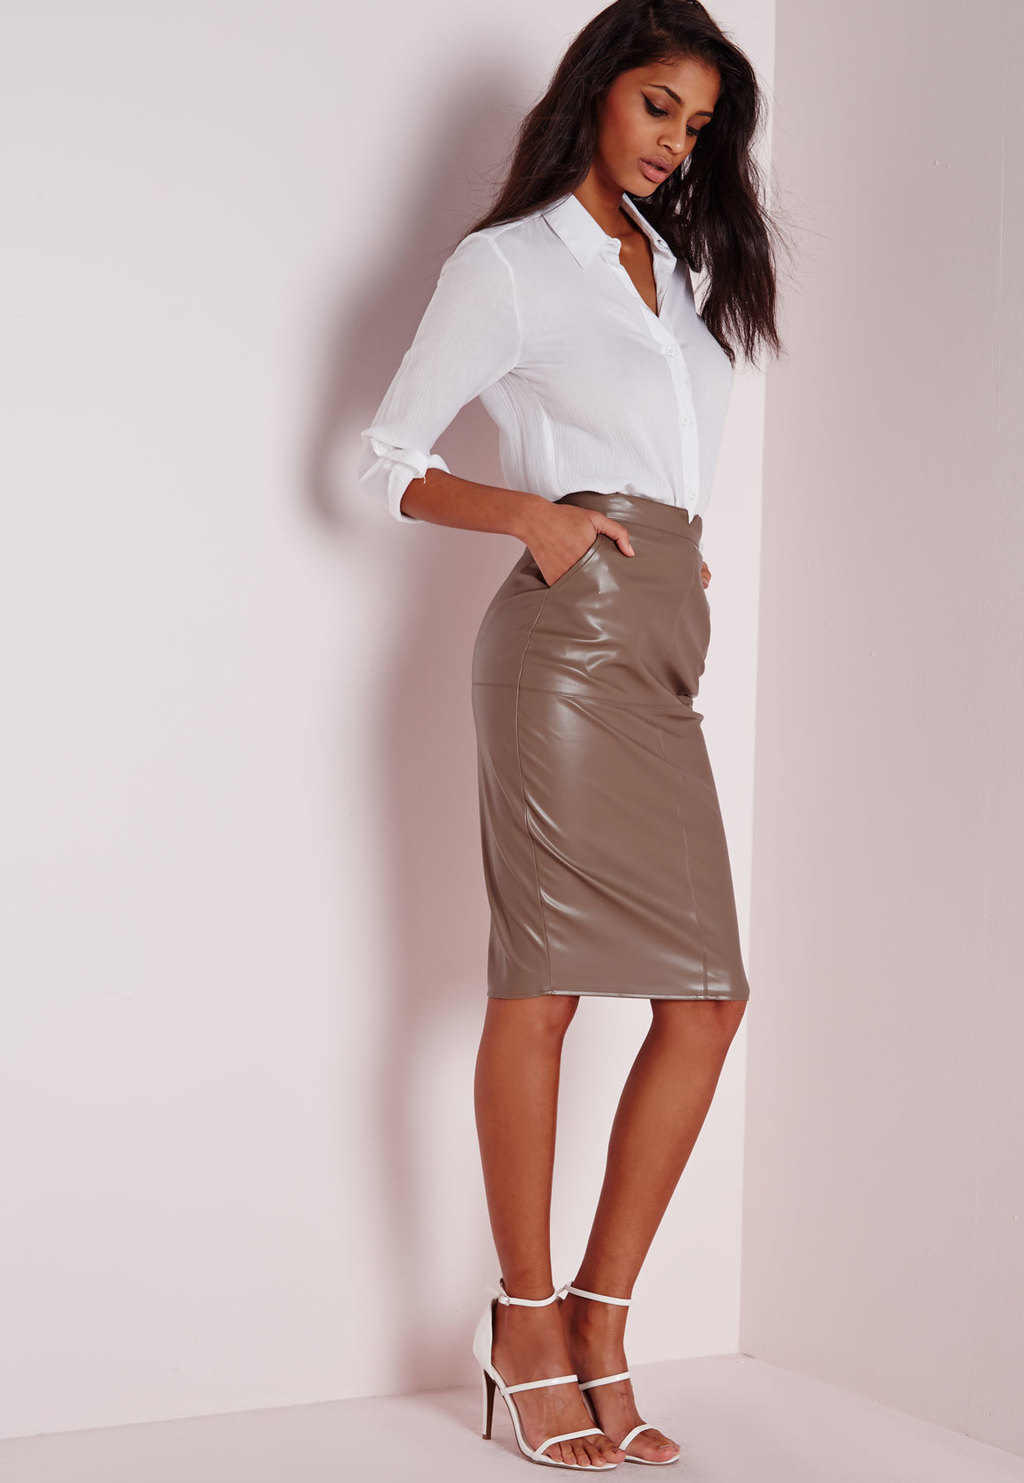 Tall Back Split Faux Leather Midi Skirt Taupe, Grey - pattern: plain; style: pencil; fit: tailored/fitted; waist: high rise; predominant colour: taupe; occasions: evening; length: on the knee; fibres: polyester/polyamide - mix; texture group: leather; pattern type: fabric; season: a/w 2015; wardrobe: event